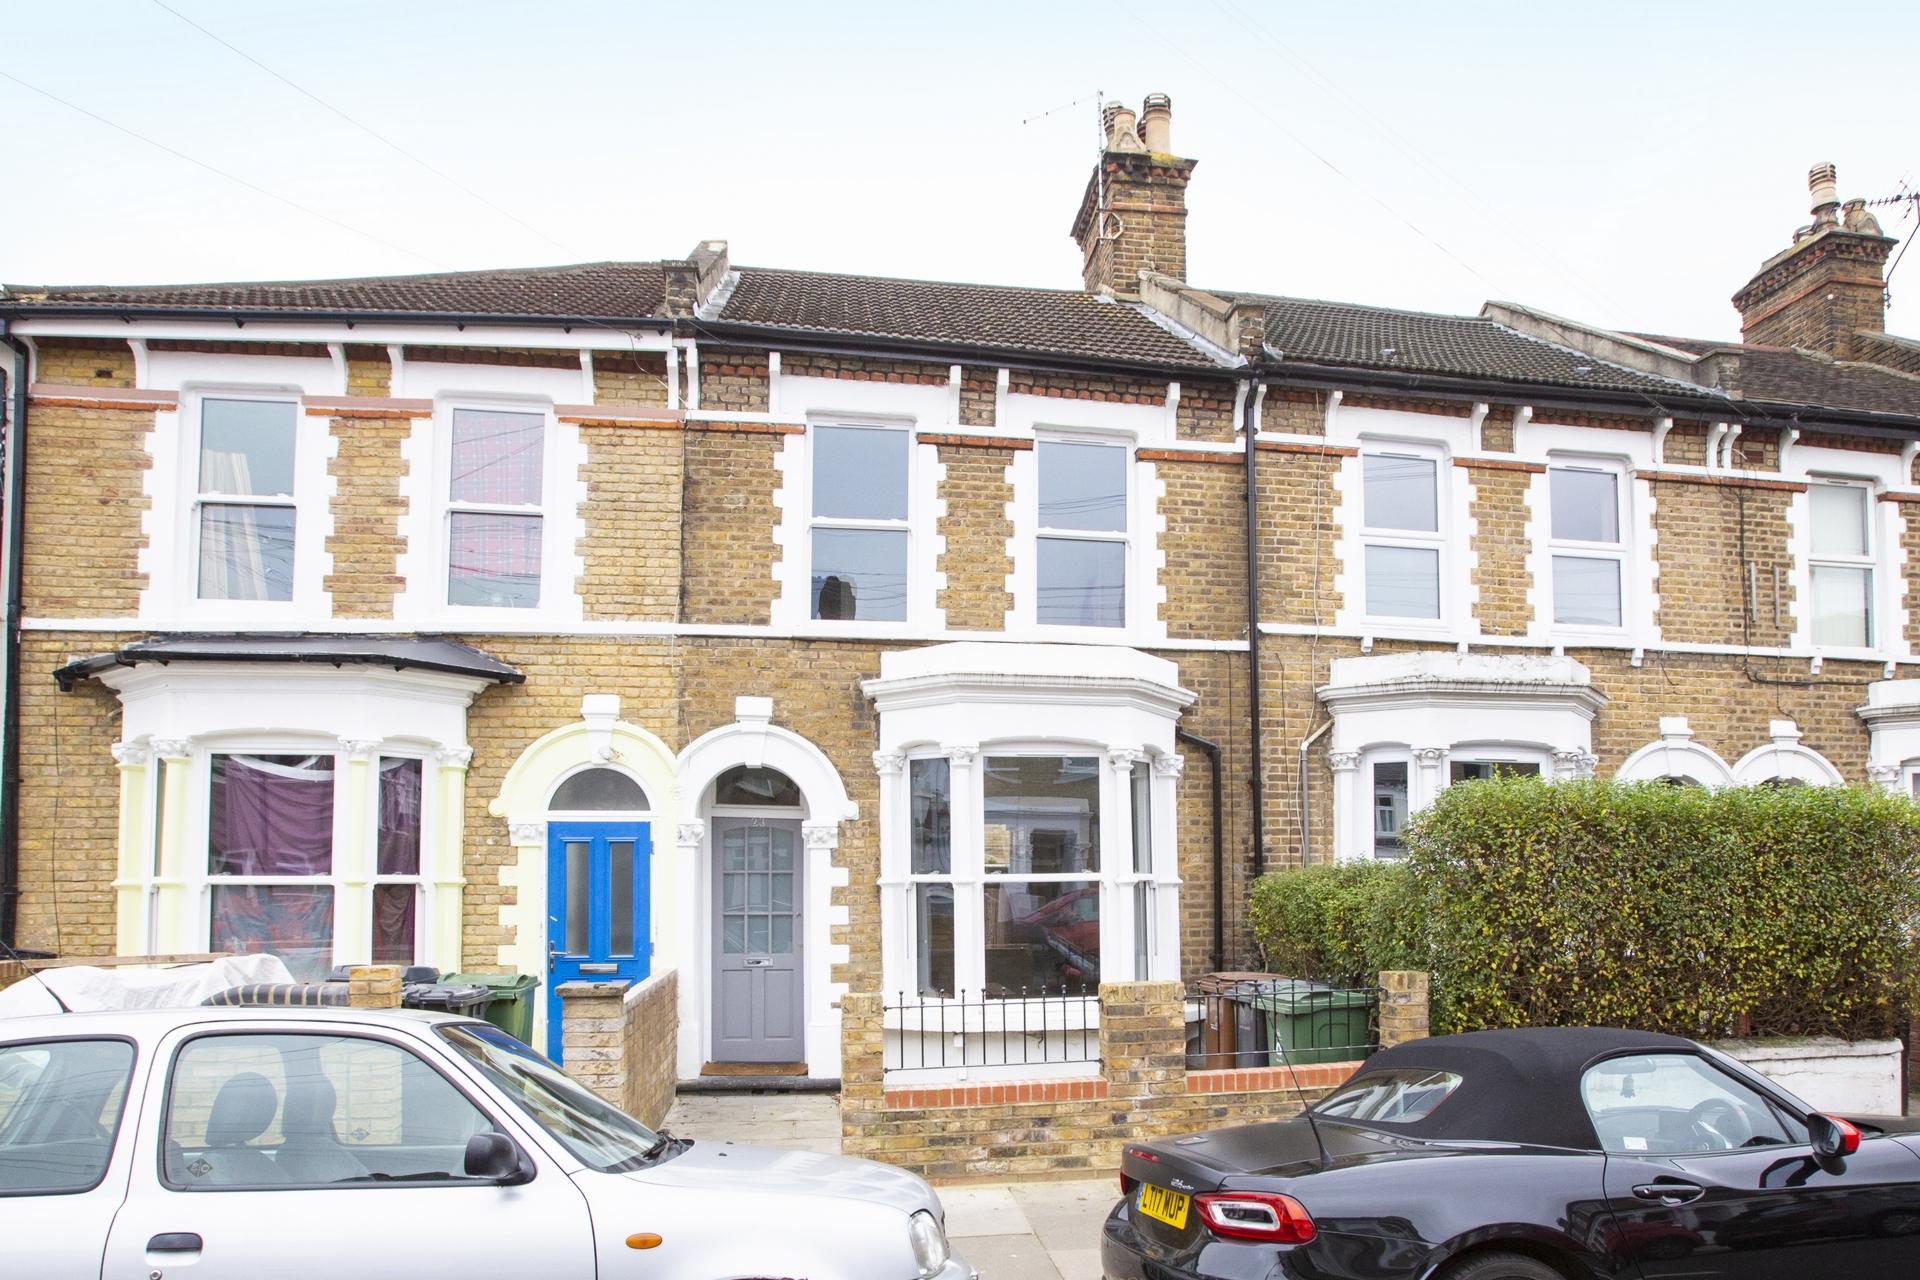 Grove Road  Bushwood Area  London  E11